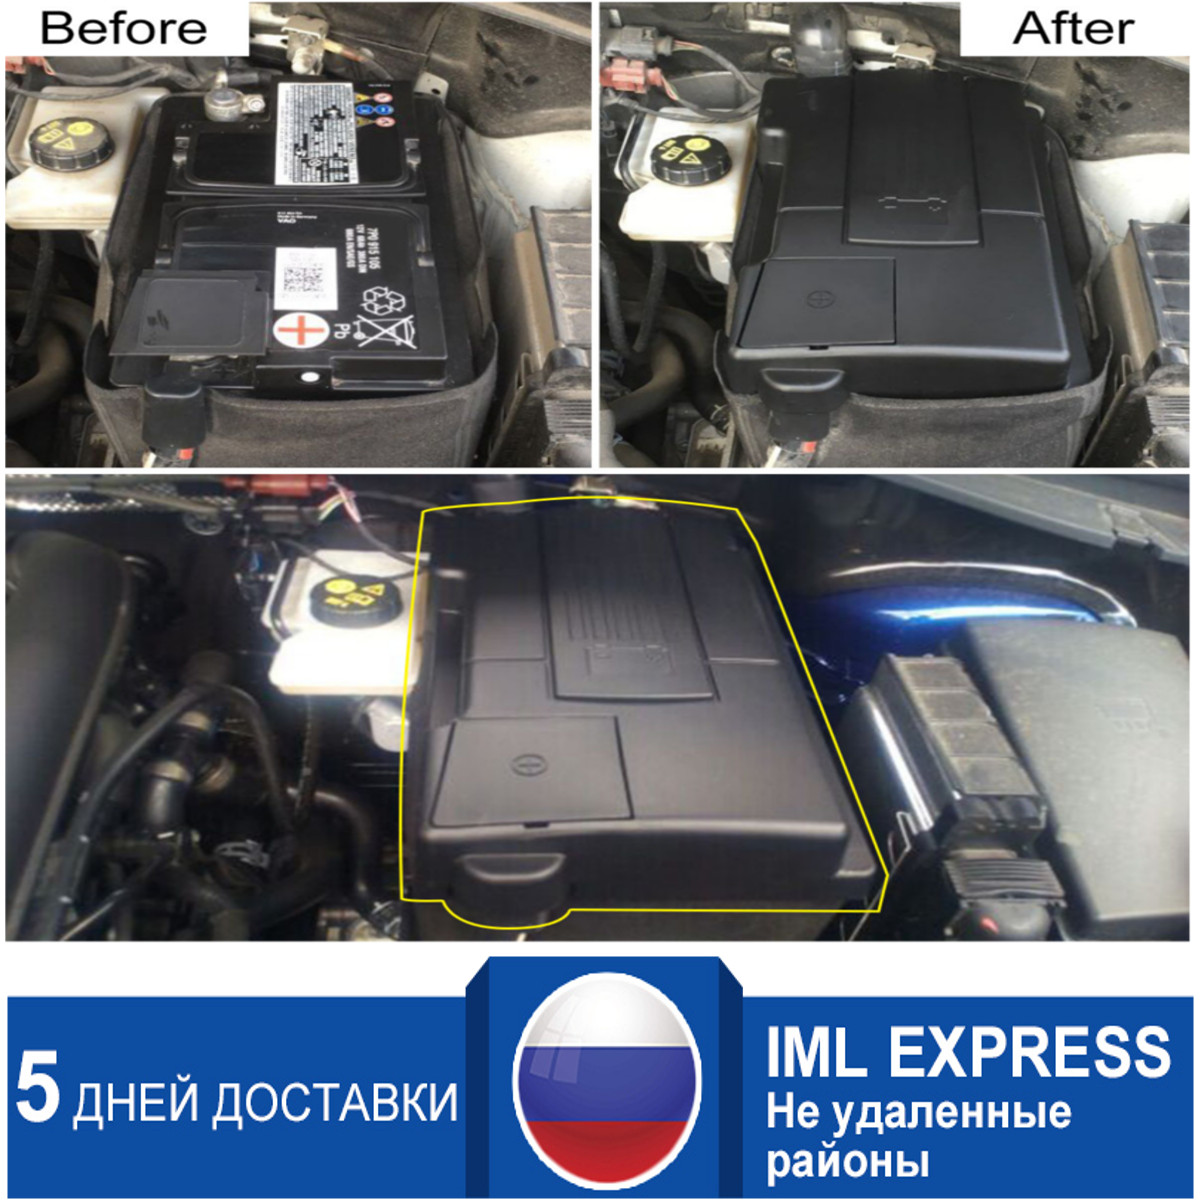 Engine Battery Dustproof Negative Electrode Waterproof Protective Cover for Skoda Kodiaq Octavia 5E A7 VW Tiguan L 2016 - 2019 image